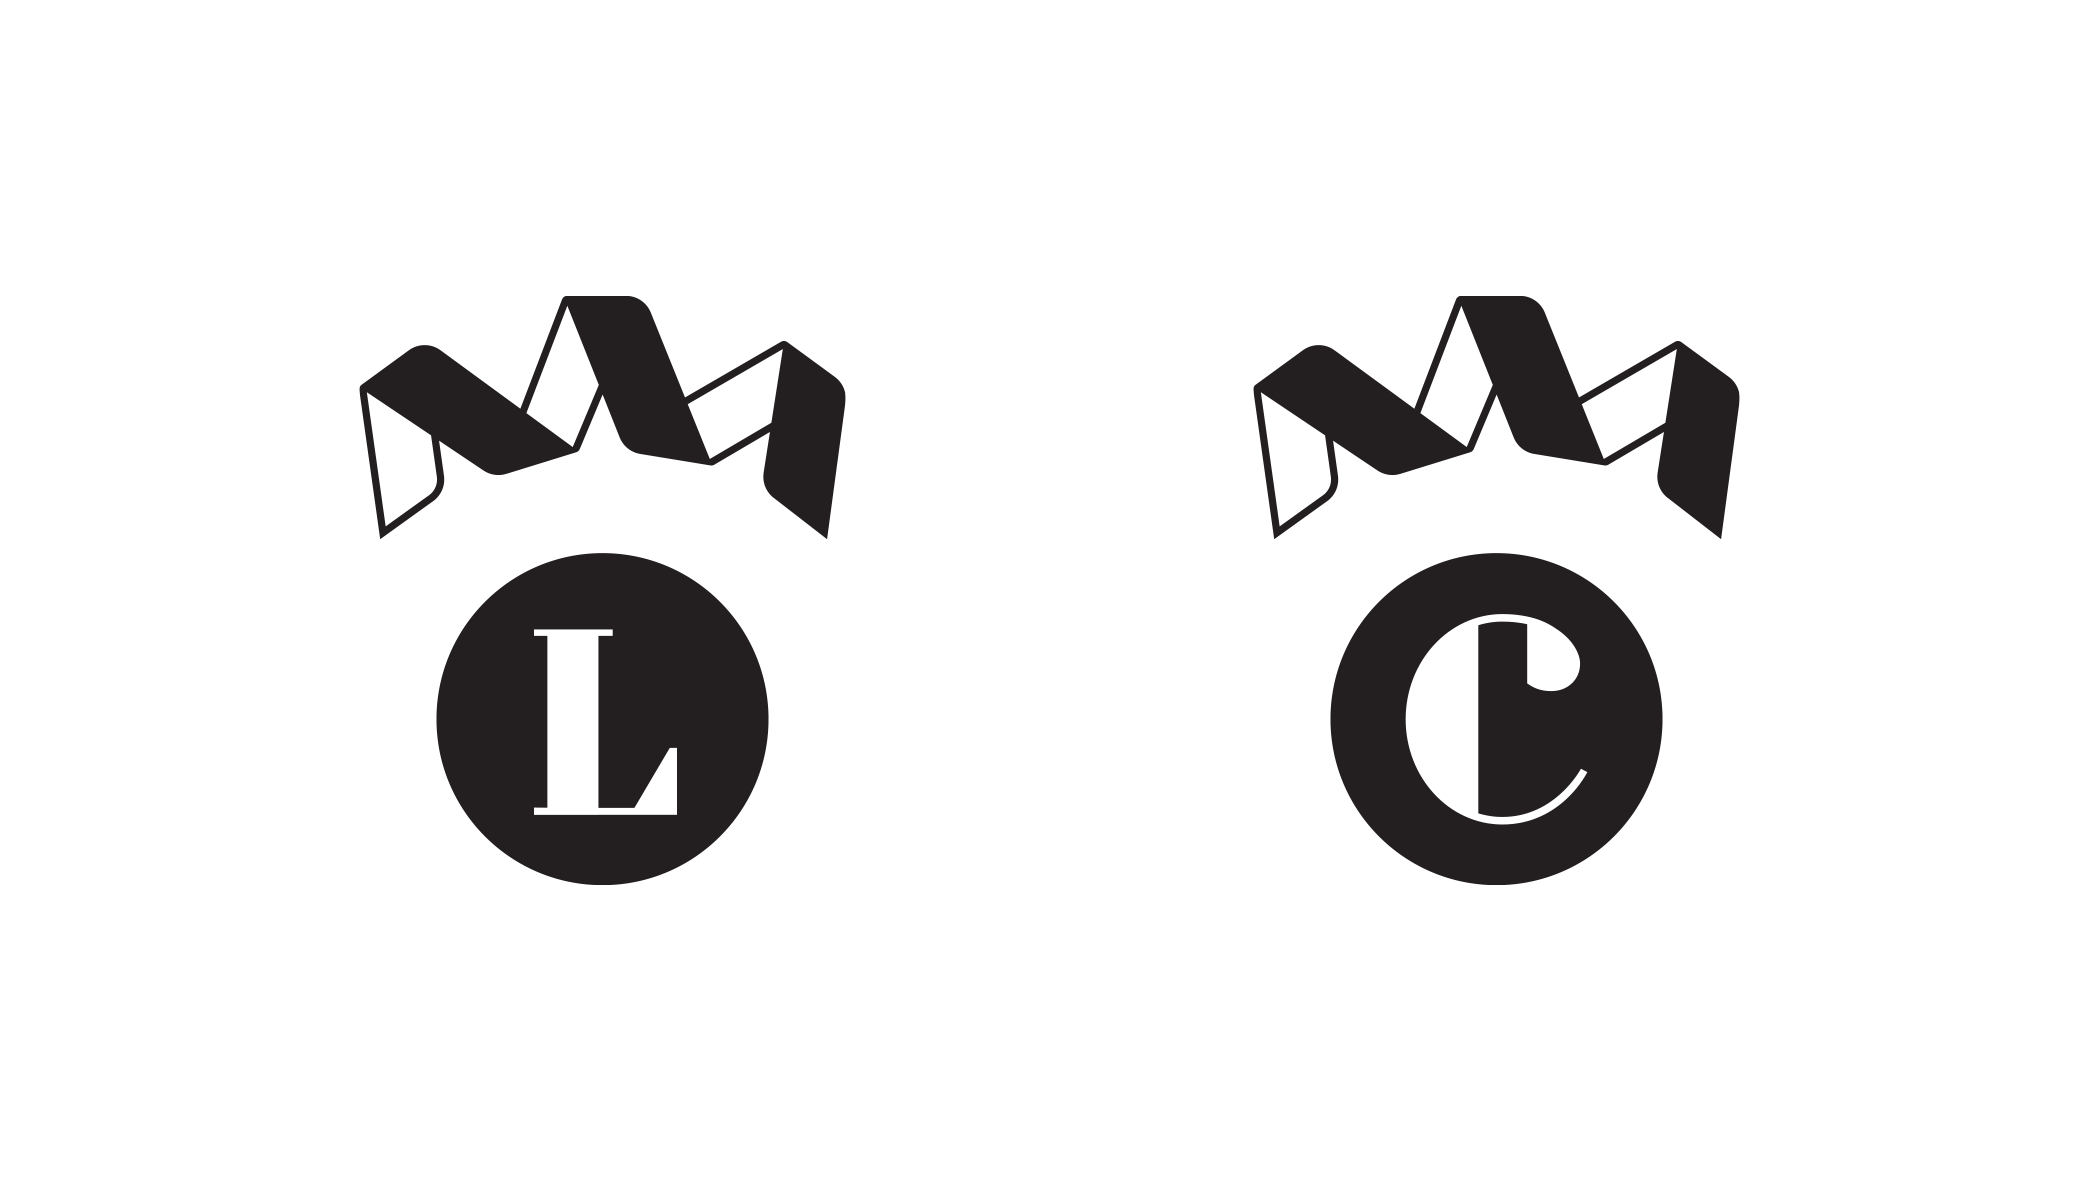 Lactocore logo variations